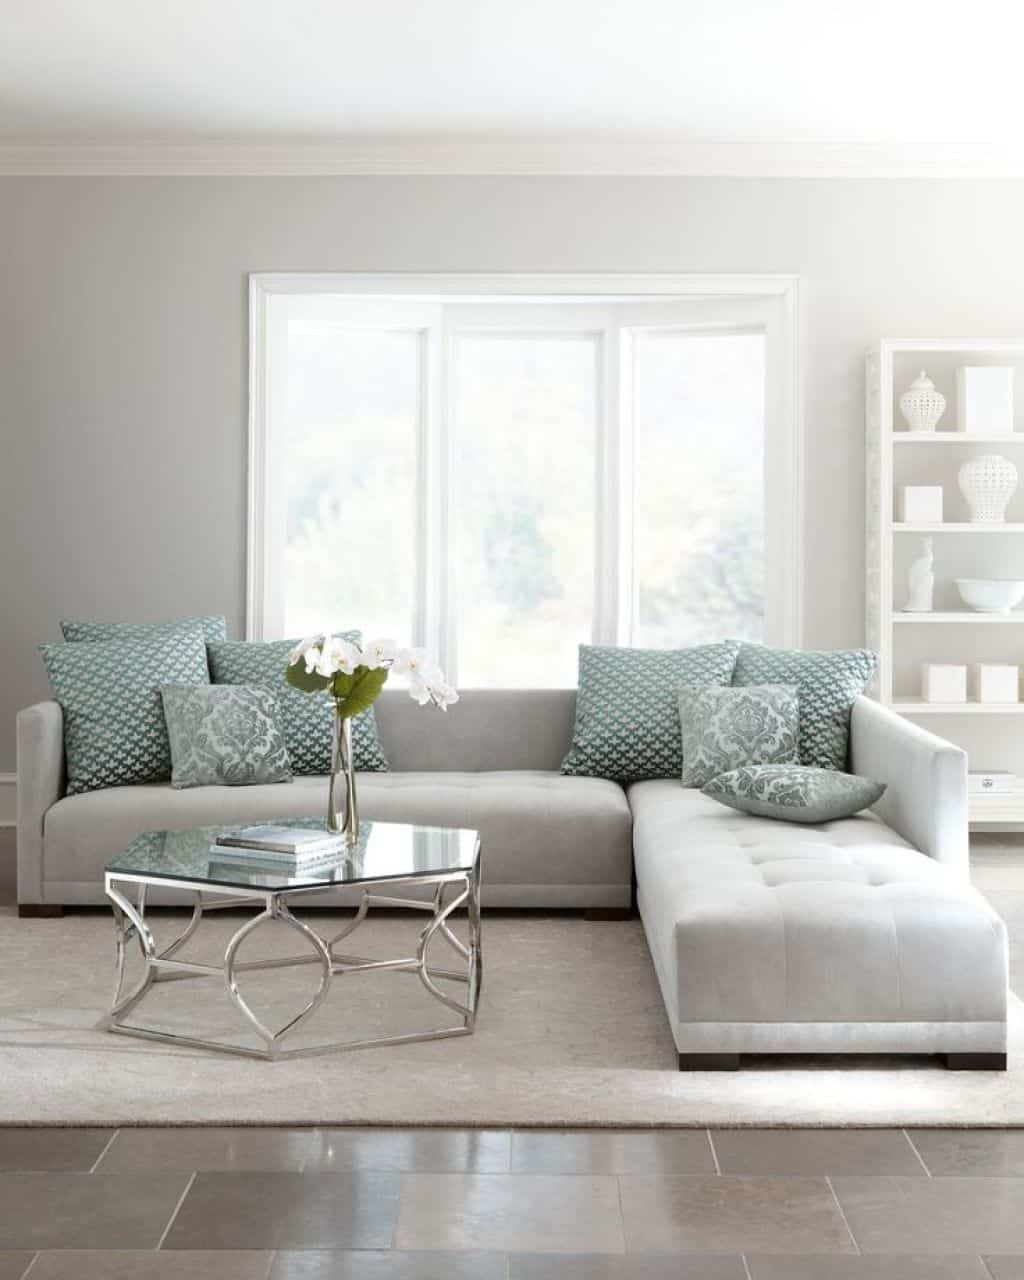 Most Popular Light Grey Sectional Sofas Regarding Living Room With Light Grey Sectional Sofa – Ways To Move A (View 15 of 20)